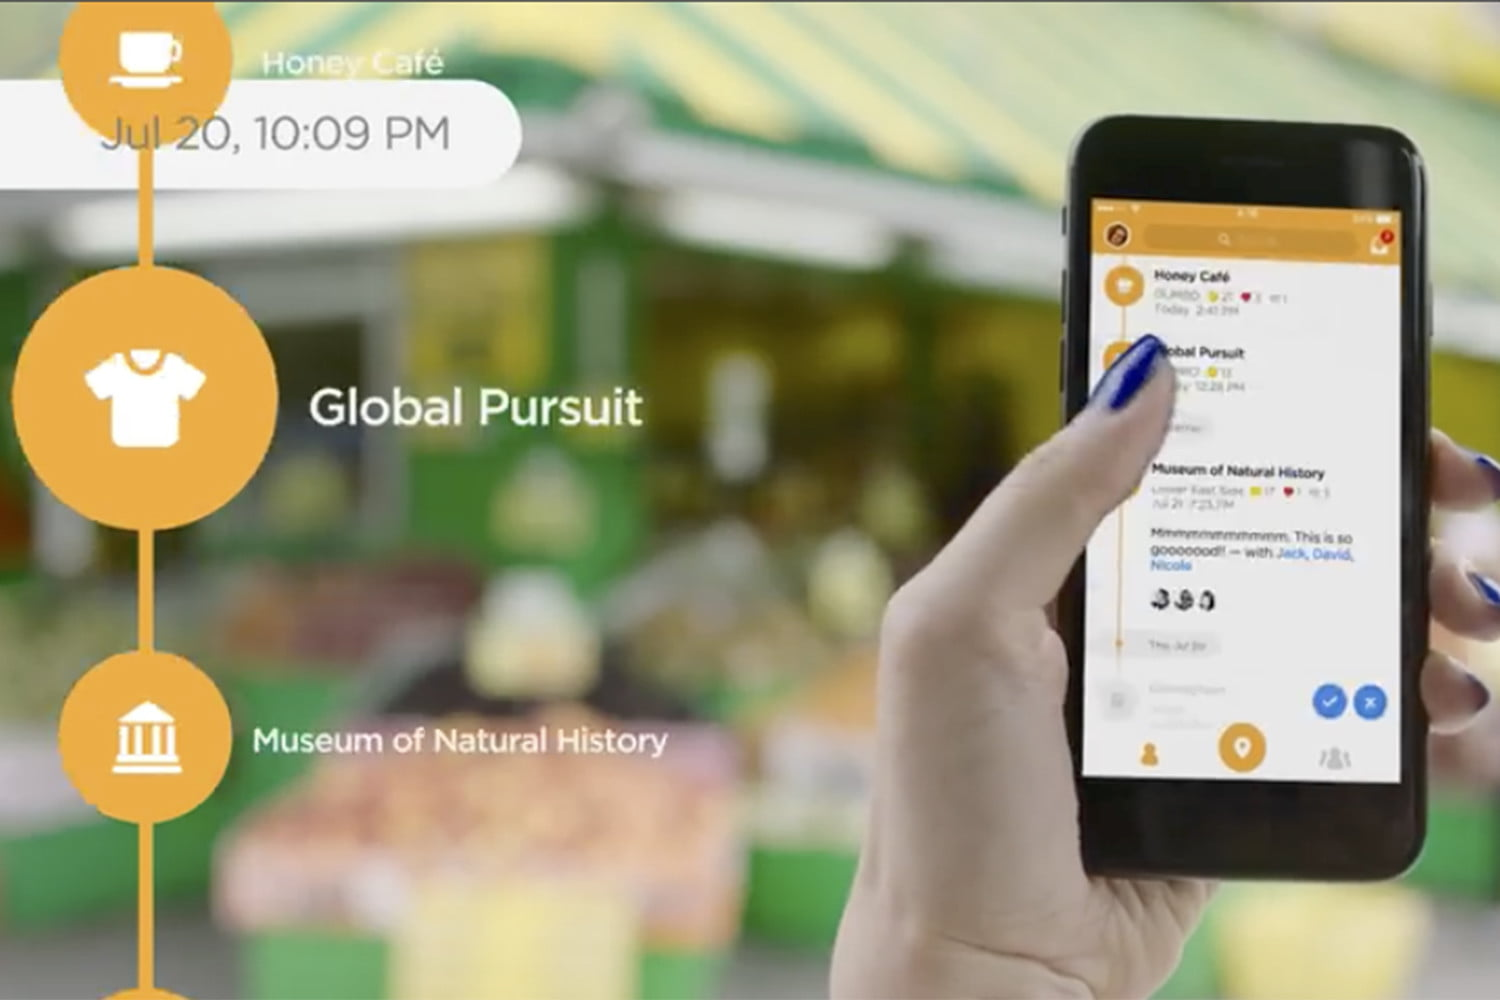 Ad for the Foursquare Swarm app showing it being used on a smartphone.